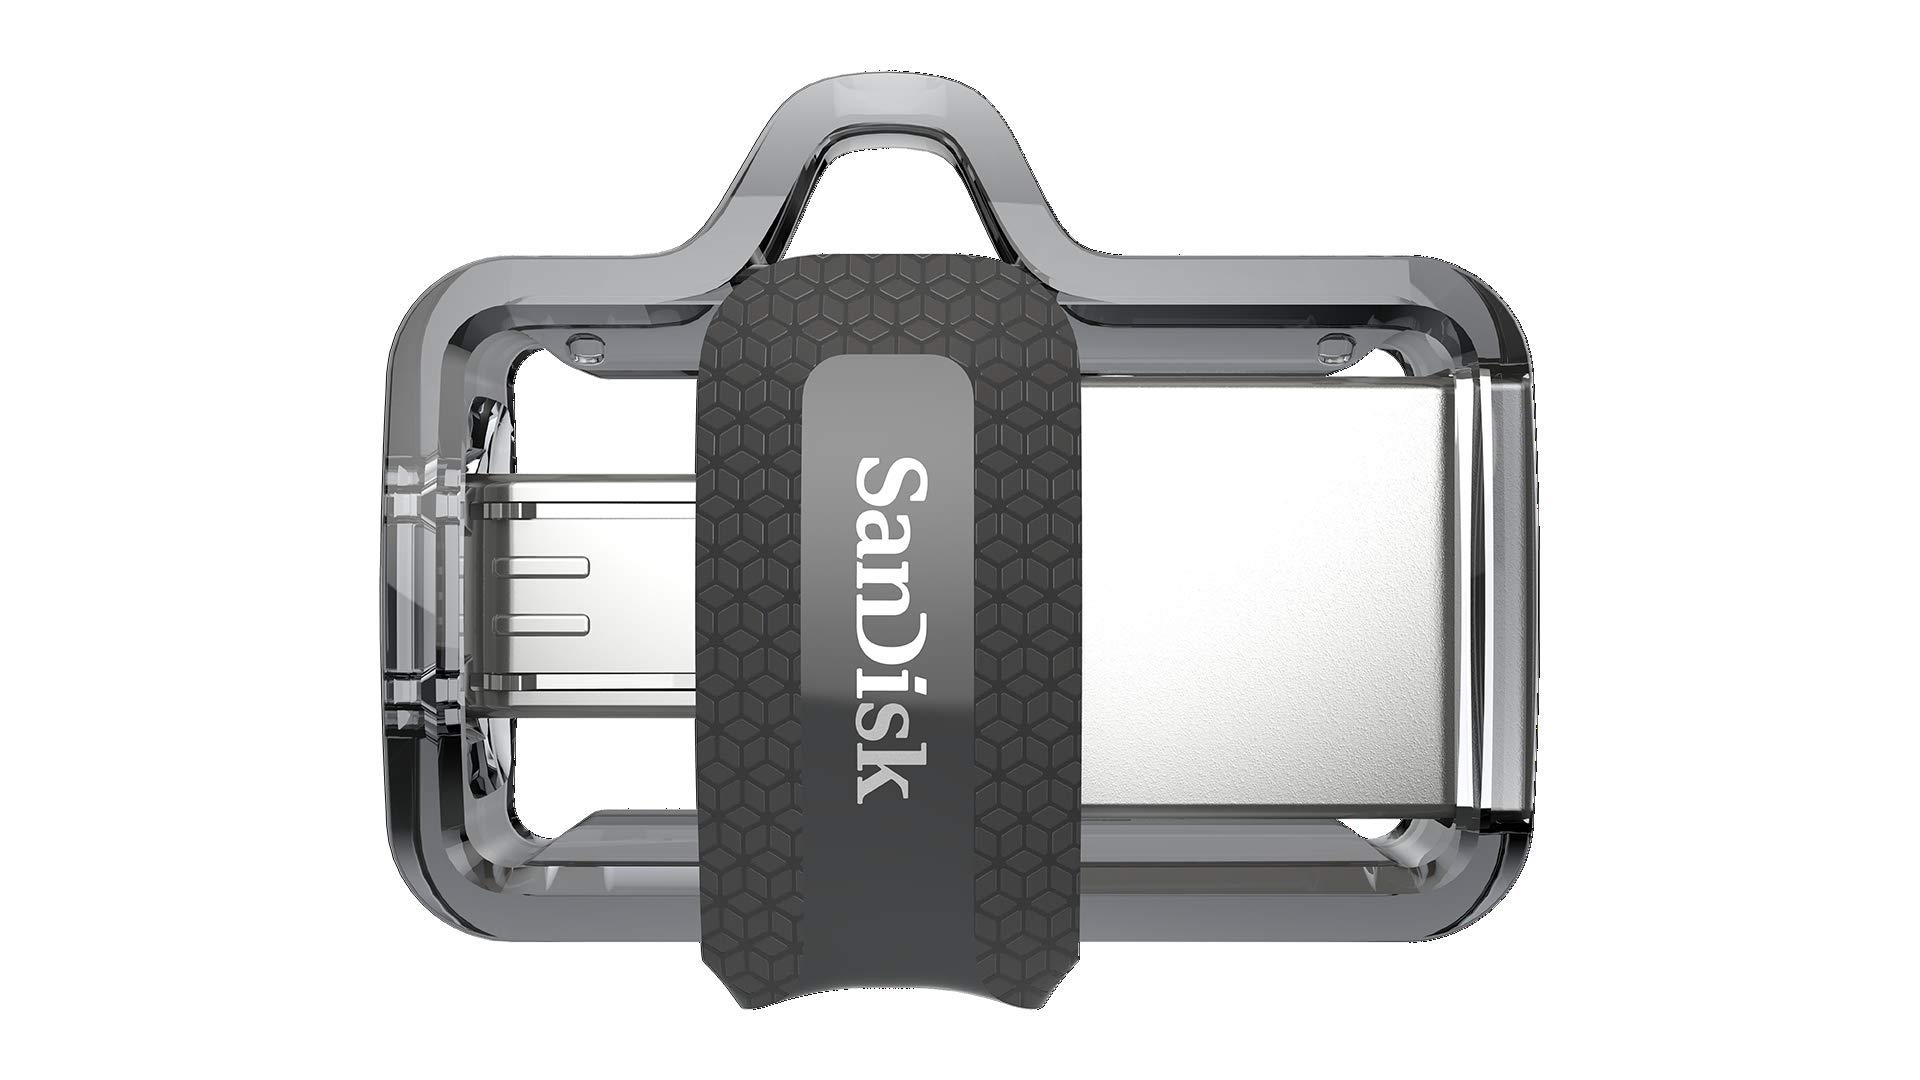 Pendrive SanDisk 256GB Ultra Dual Drive M3.0 For Android Dev